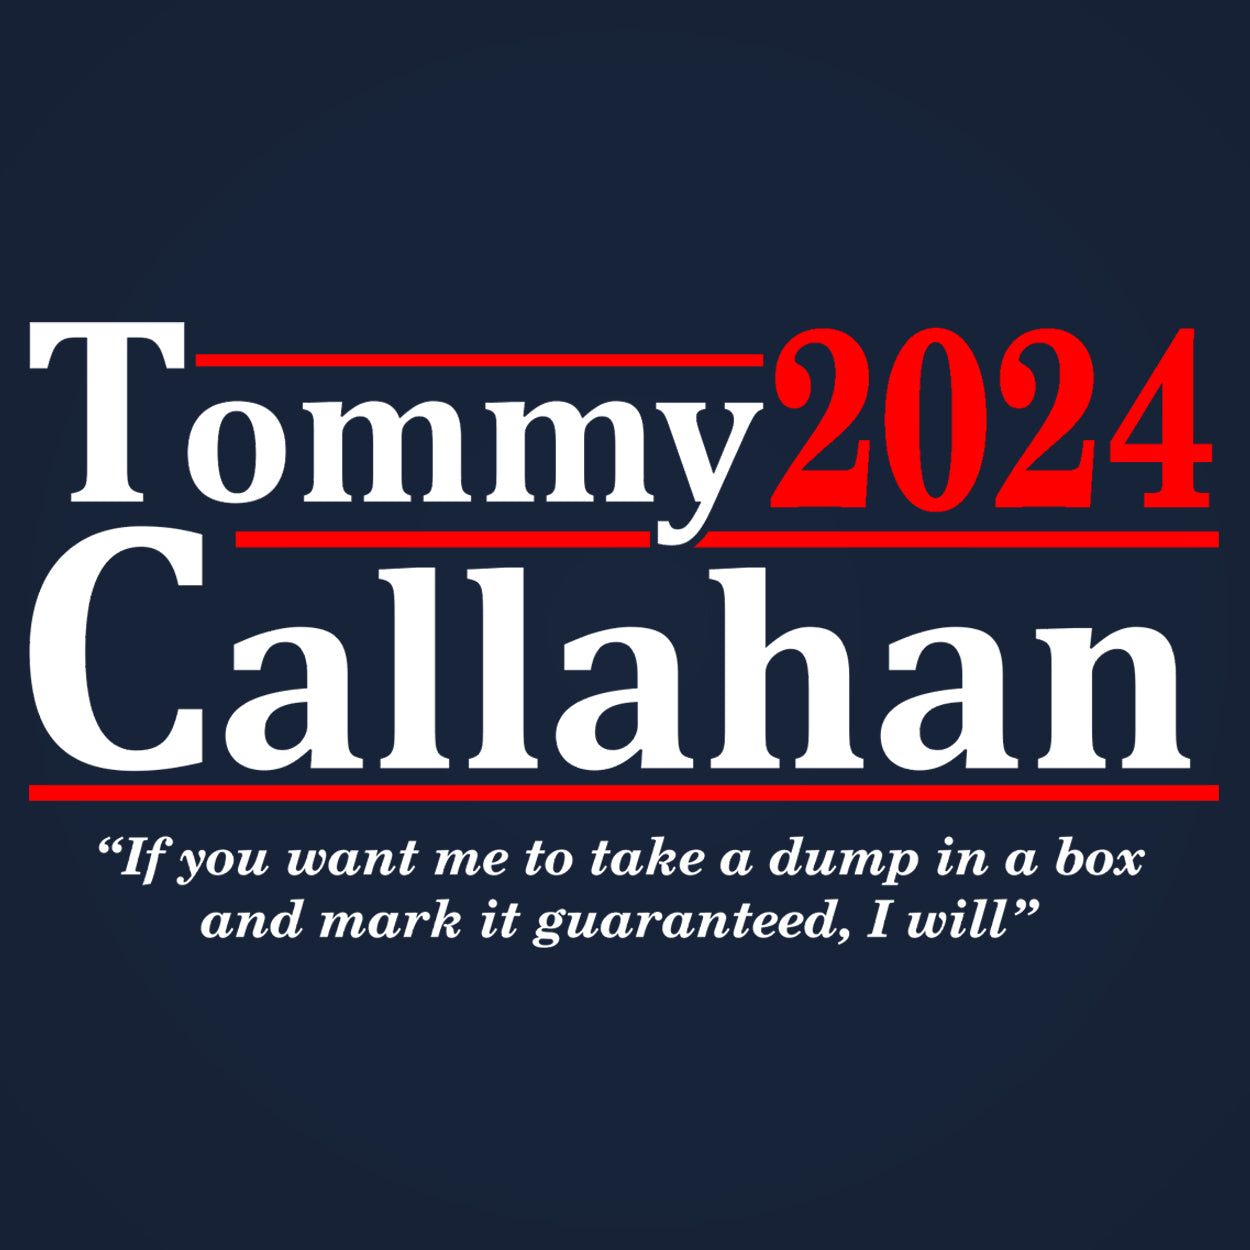 Tommy Callahan 2020 Election